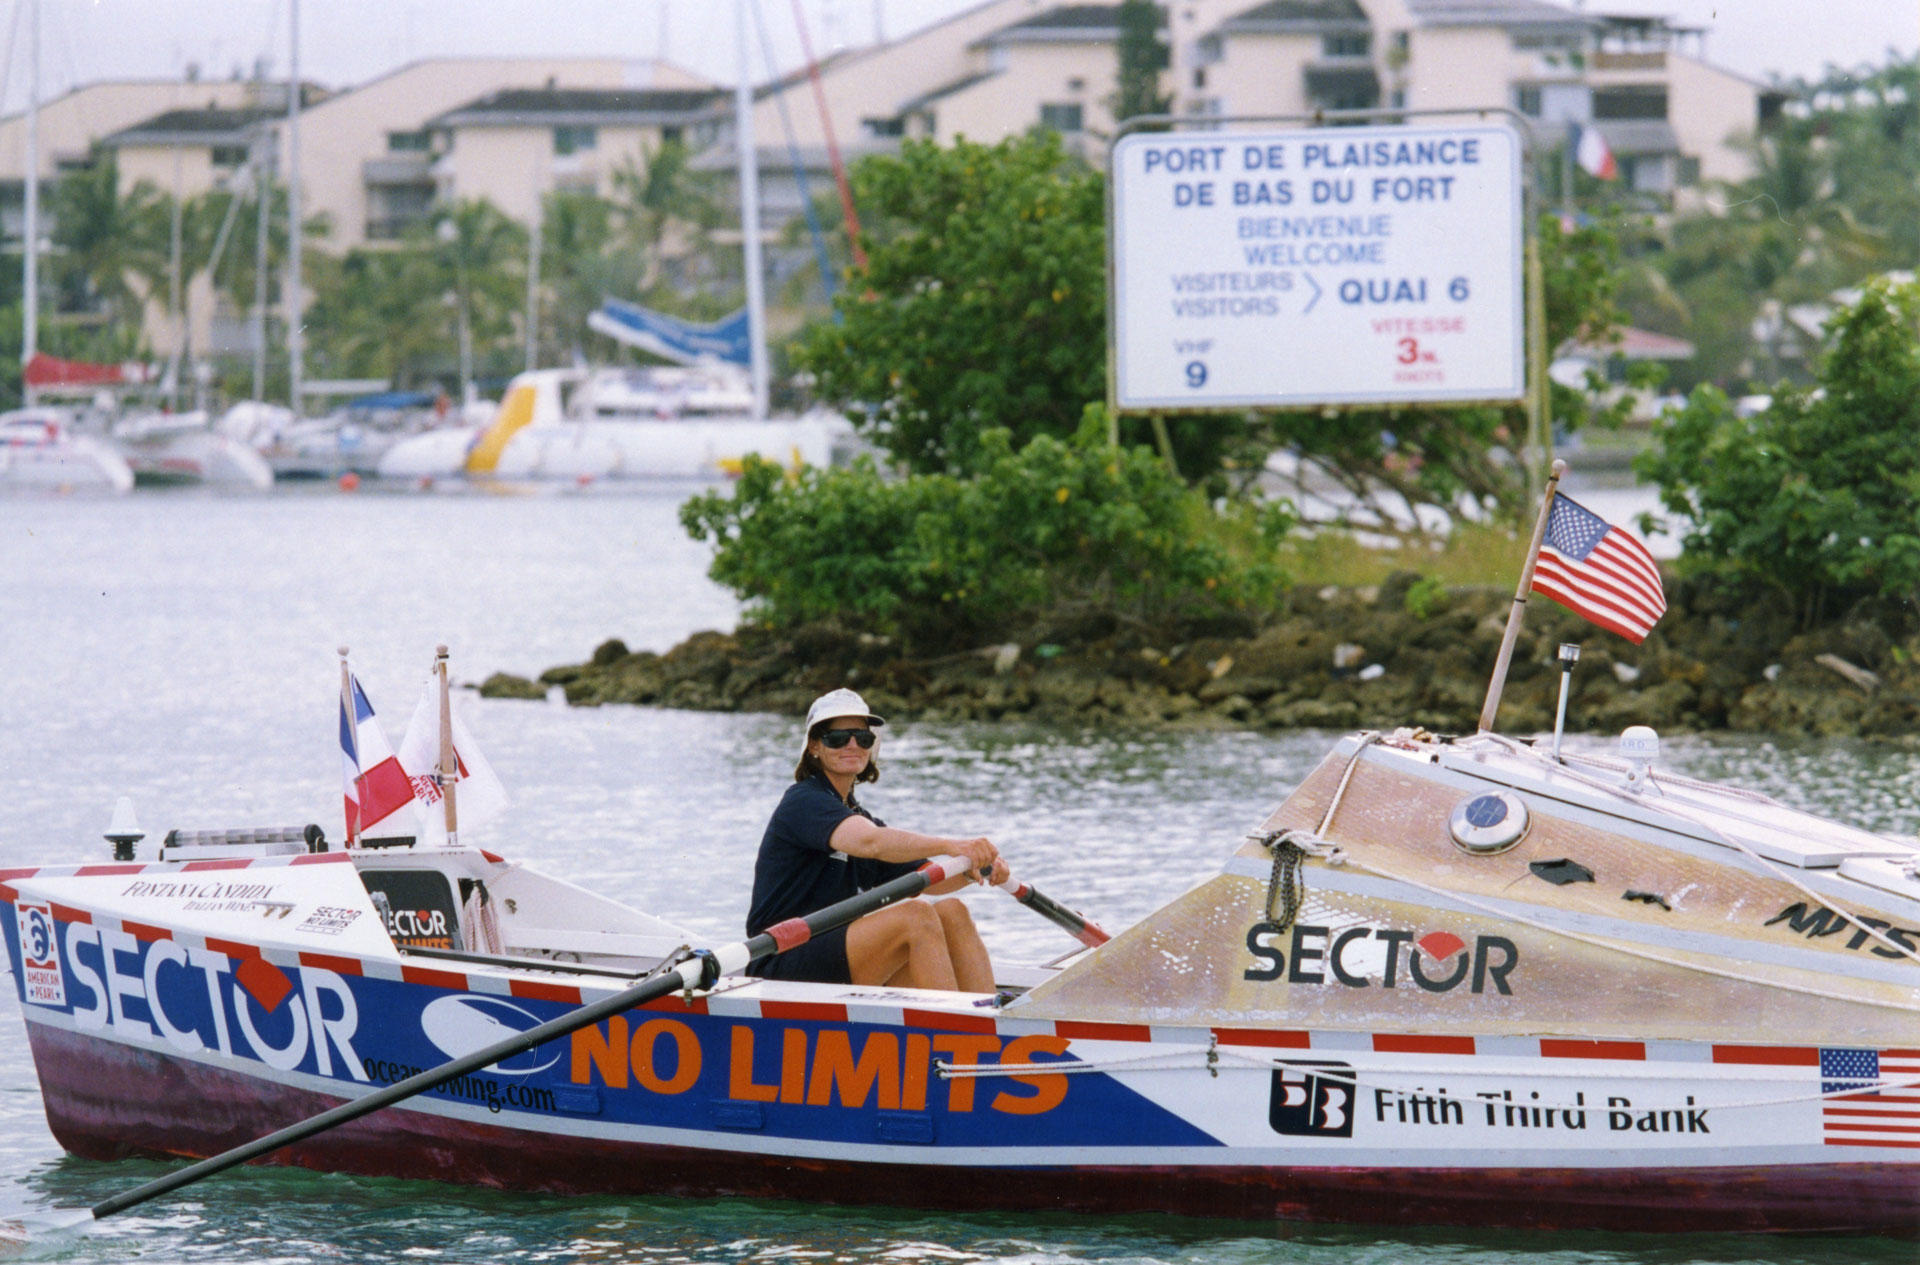 Tori Murden McClure in her rowboat near her final destination in Guadeloupe, after rowing 3,333 miles over 81 days.